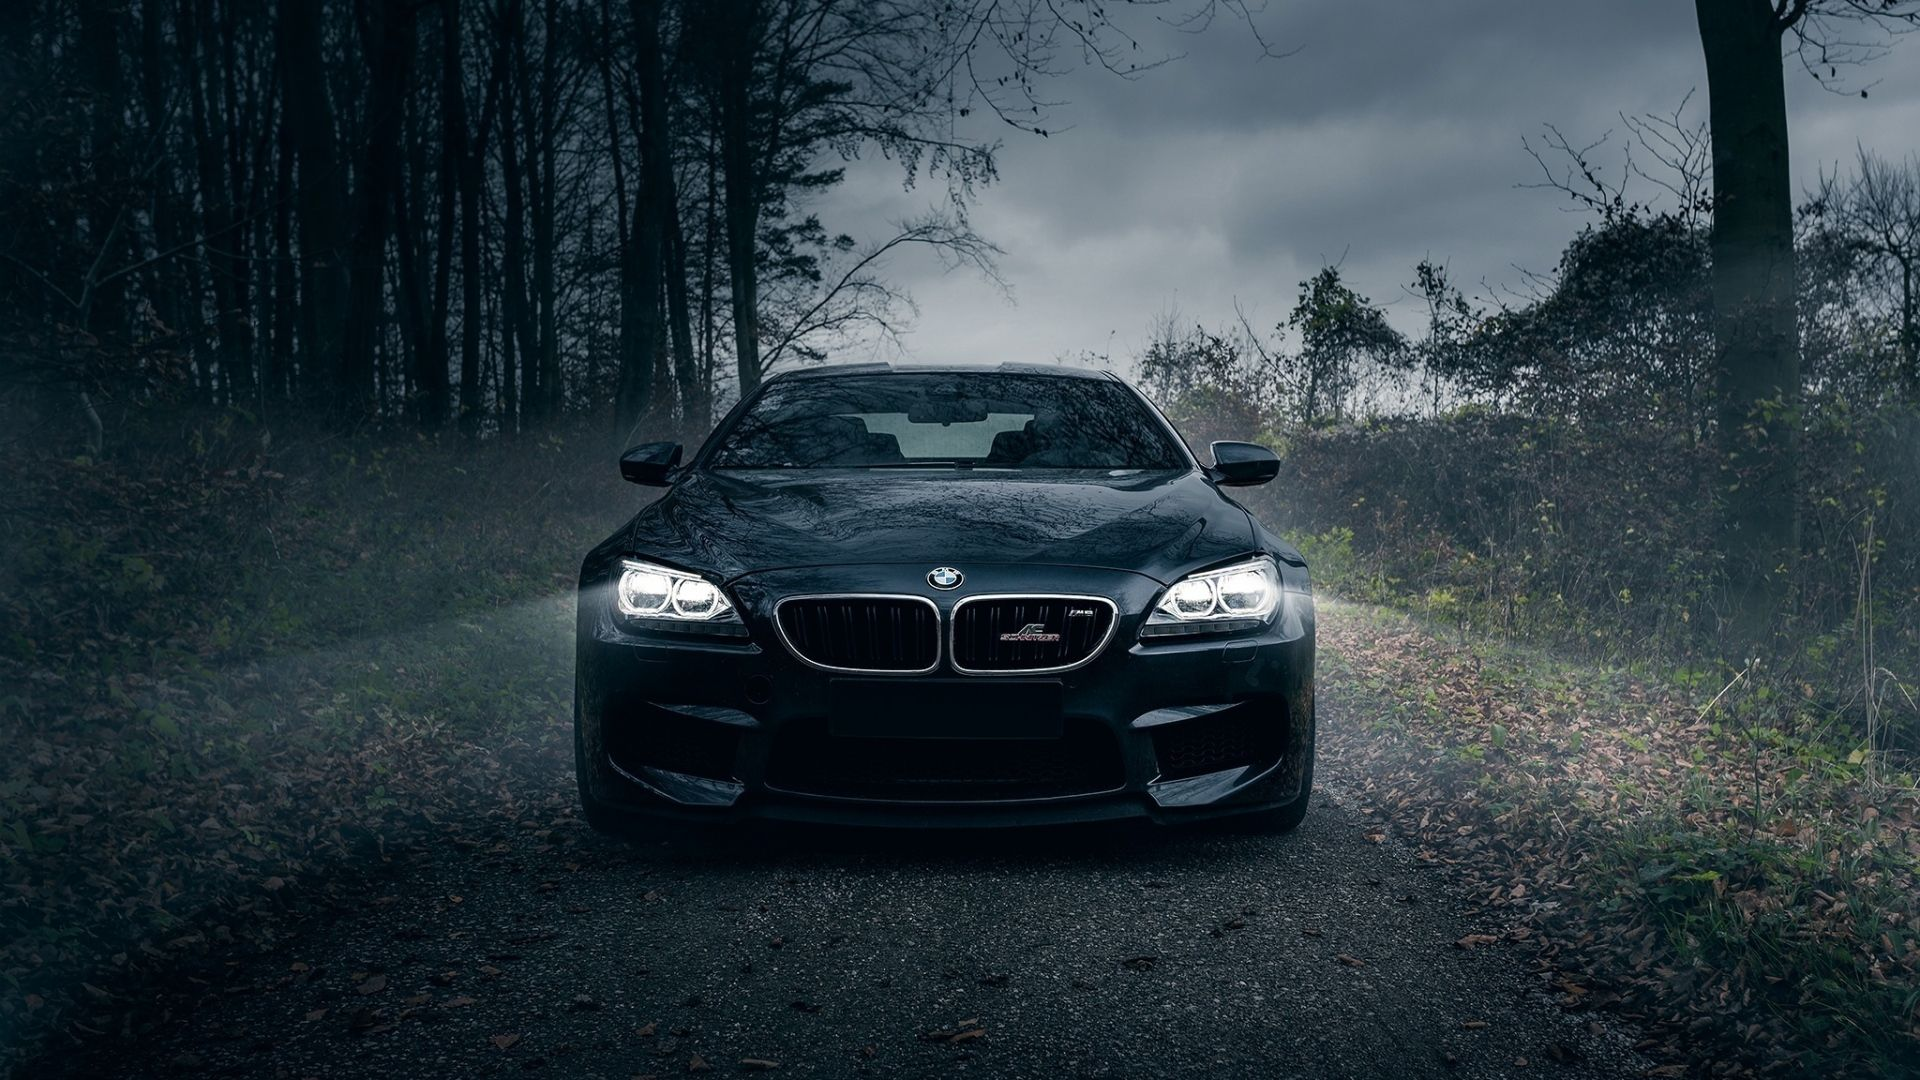 Download Wallpaper 1920x1080 Bmw M6 Dark Knight Black Forest